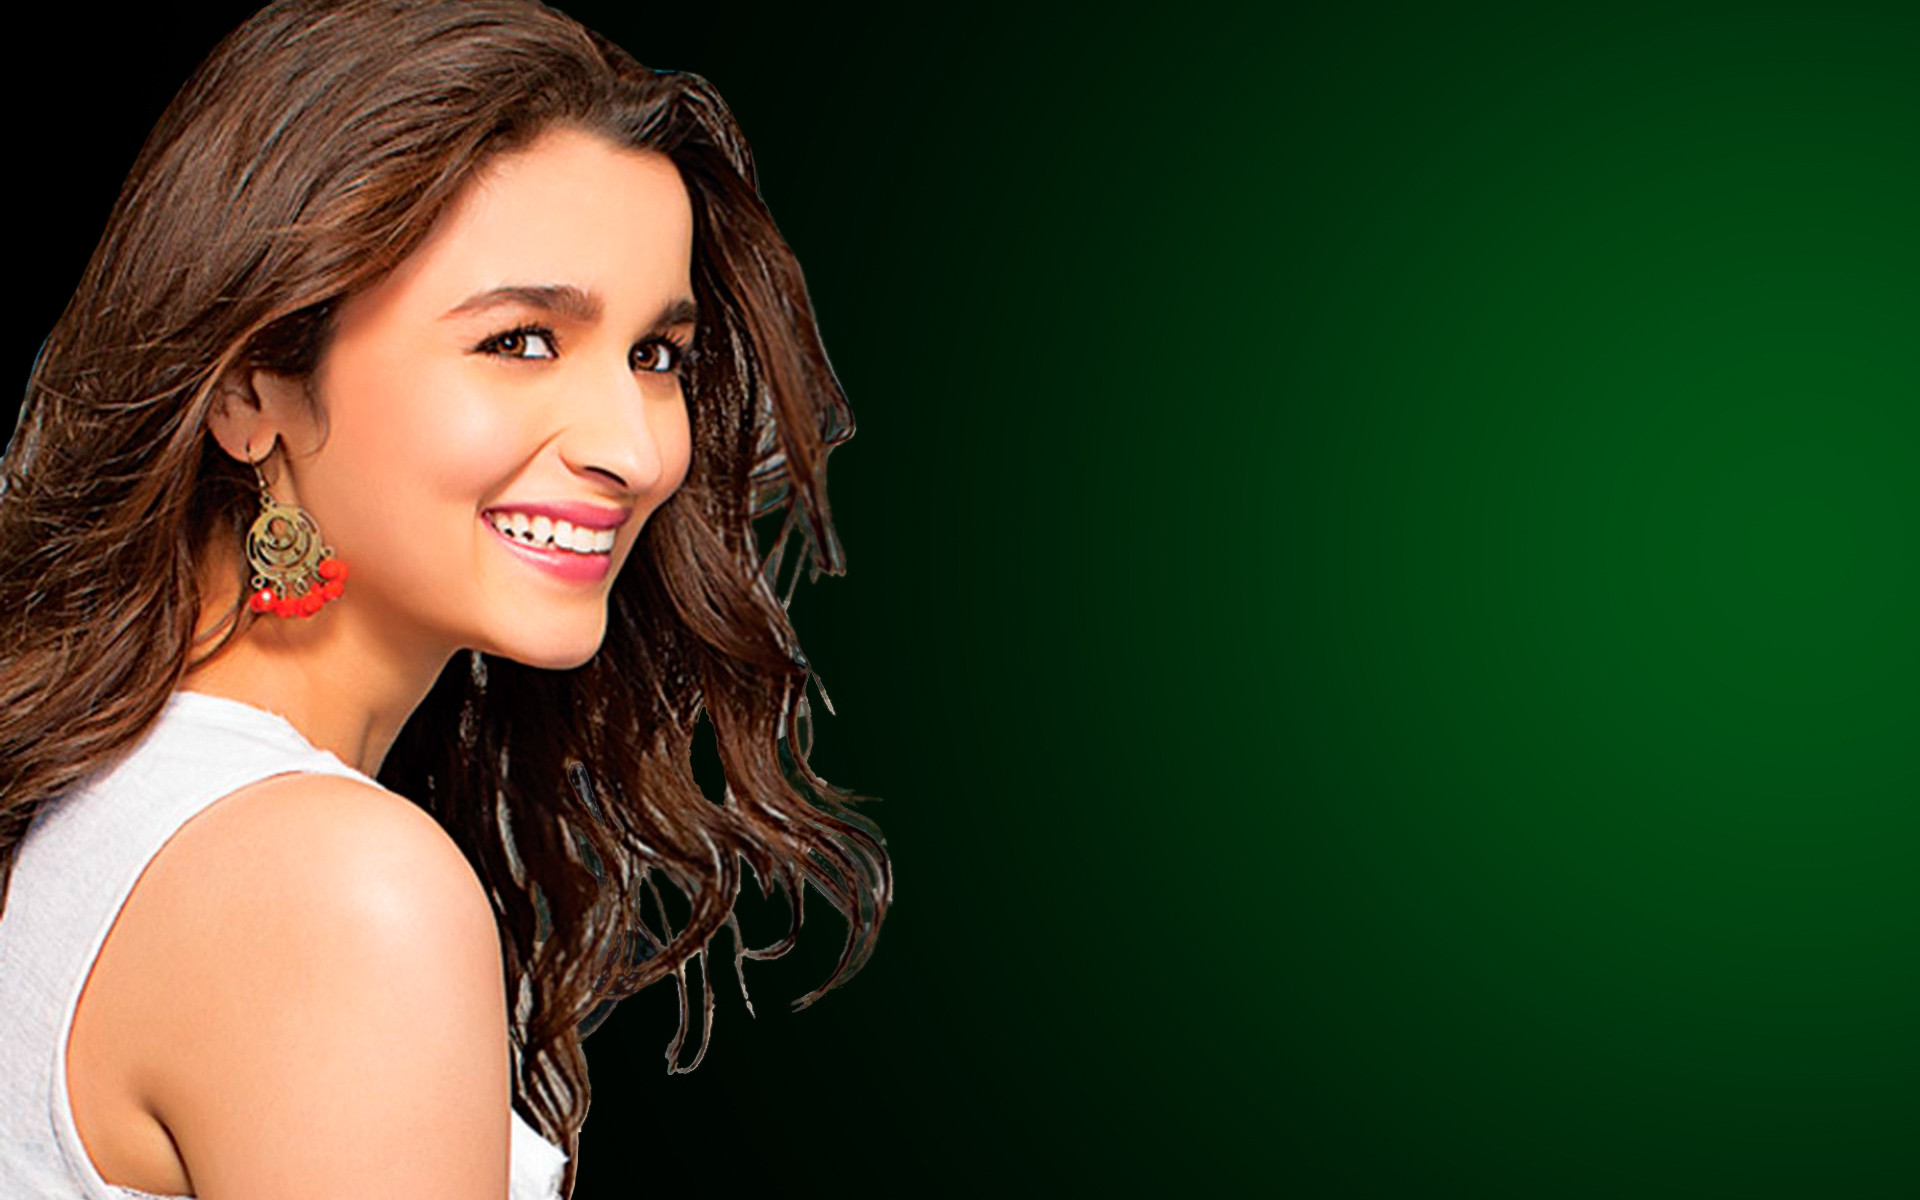 Bollywood Actress Alia Bhatt 1080p Tablet Wall 4222 Wallpaper 1920x1200